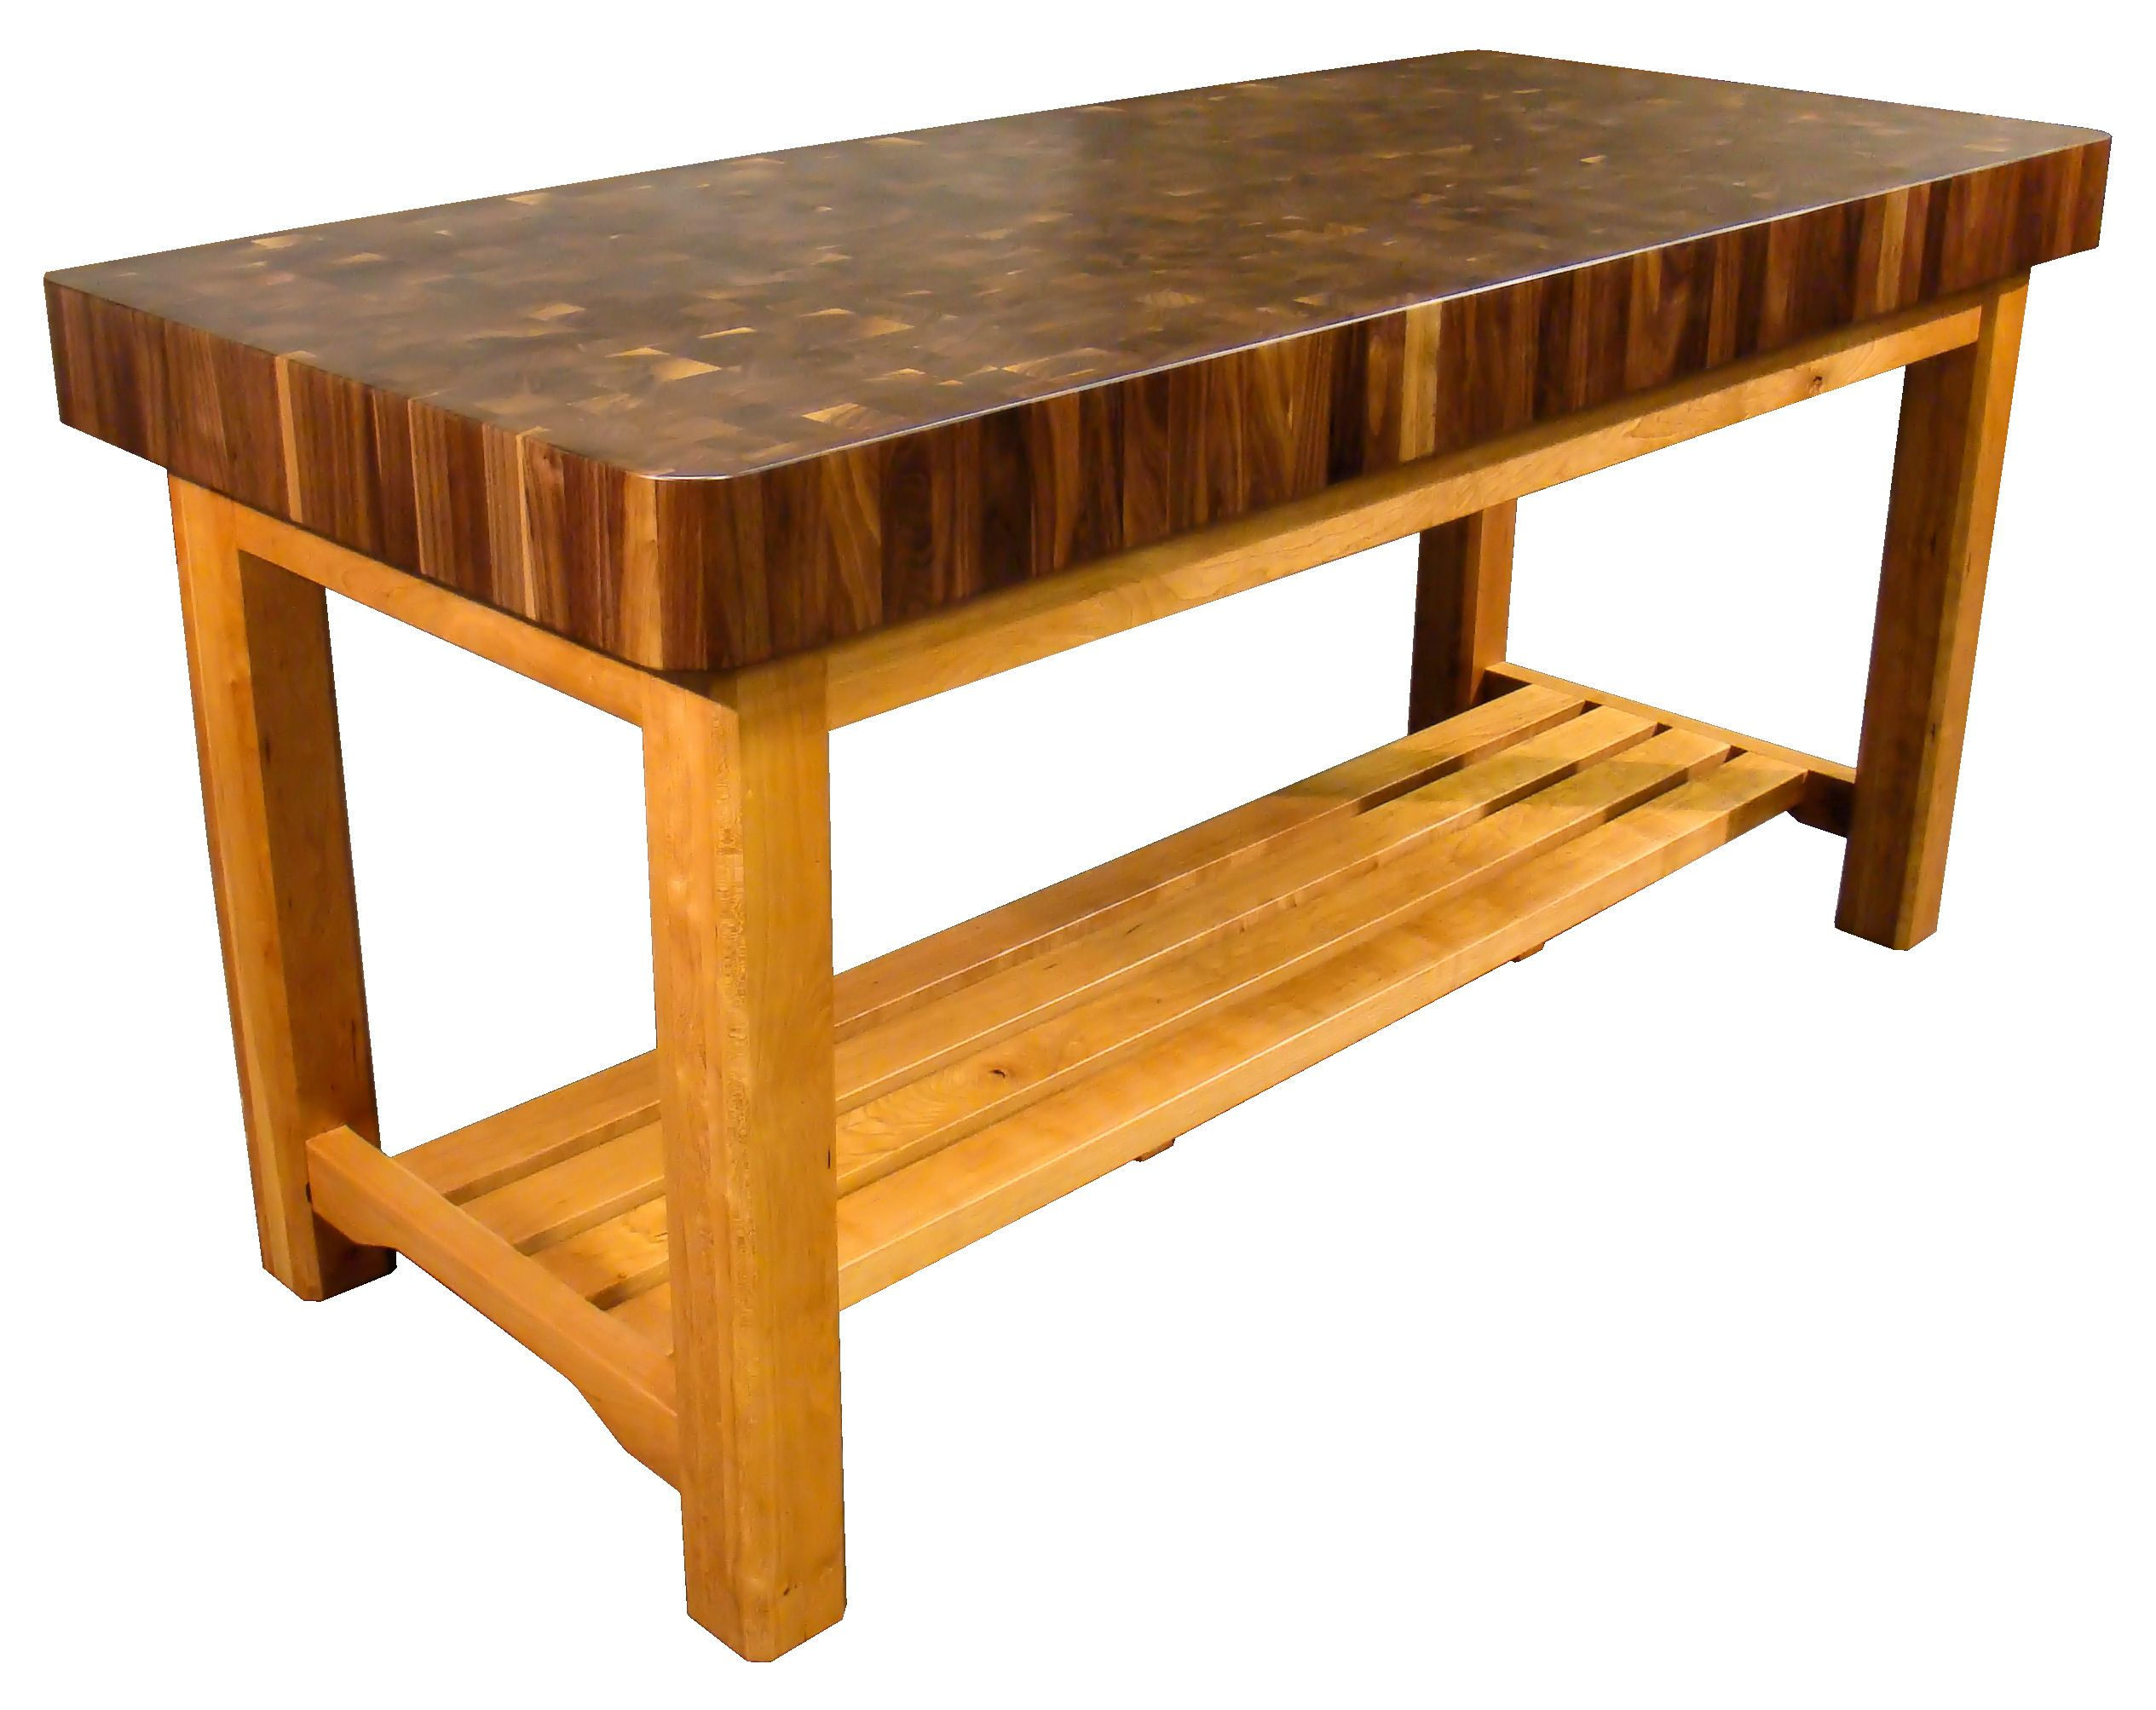 DeVos Custom Woodworking Custom Wood Tables with Shelves